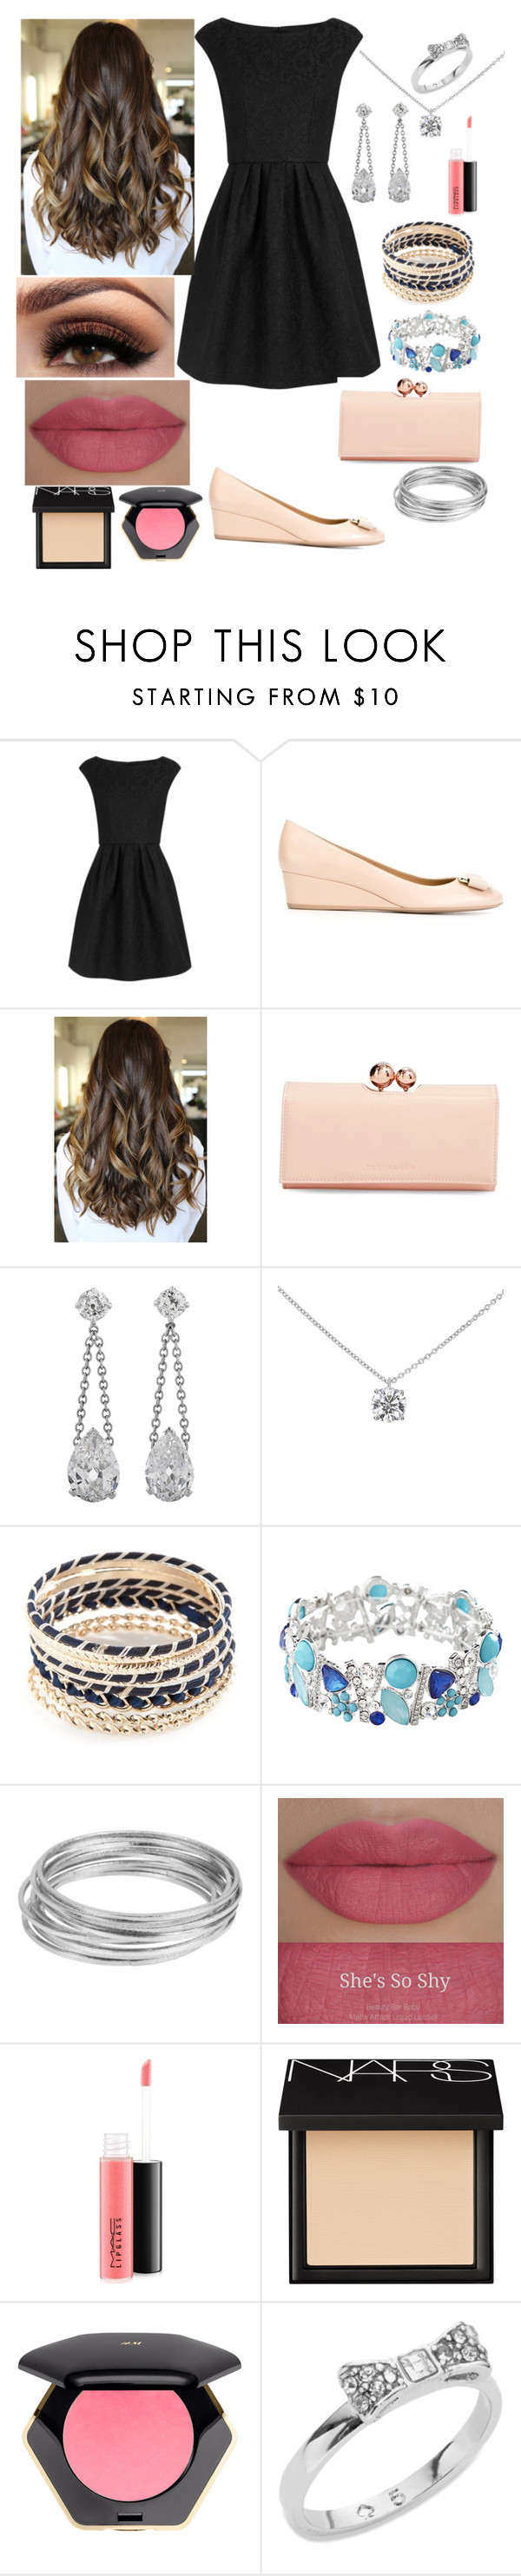 """""""A date night out"""" by georgia-lane ❤ liked on Polyvore featuring Boutique Moschino, Salvatore Ferragamo, Ted Baker, Tiffany & Co., New Directions, Avenue, Worthington, She's So, MAC Cosmetics and NARS Cosmetics"""